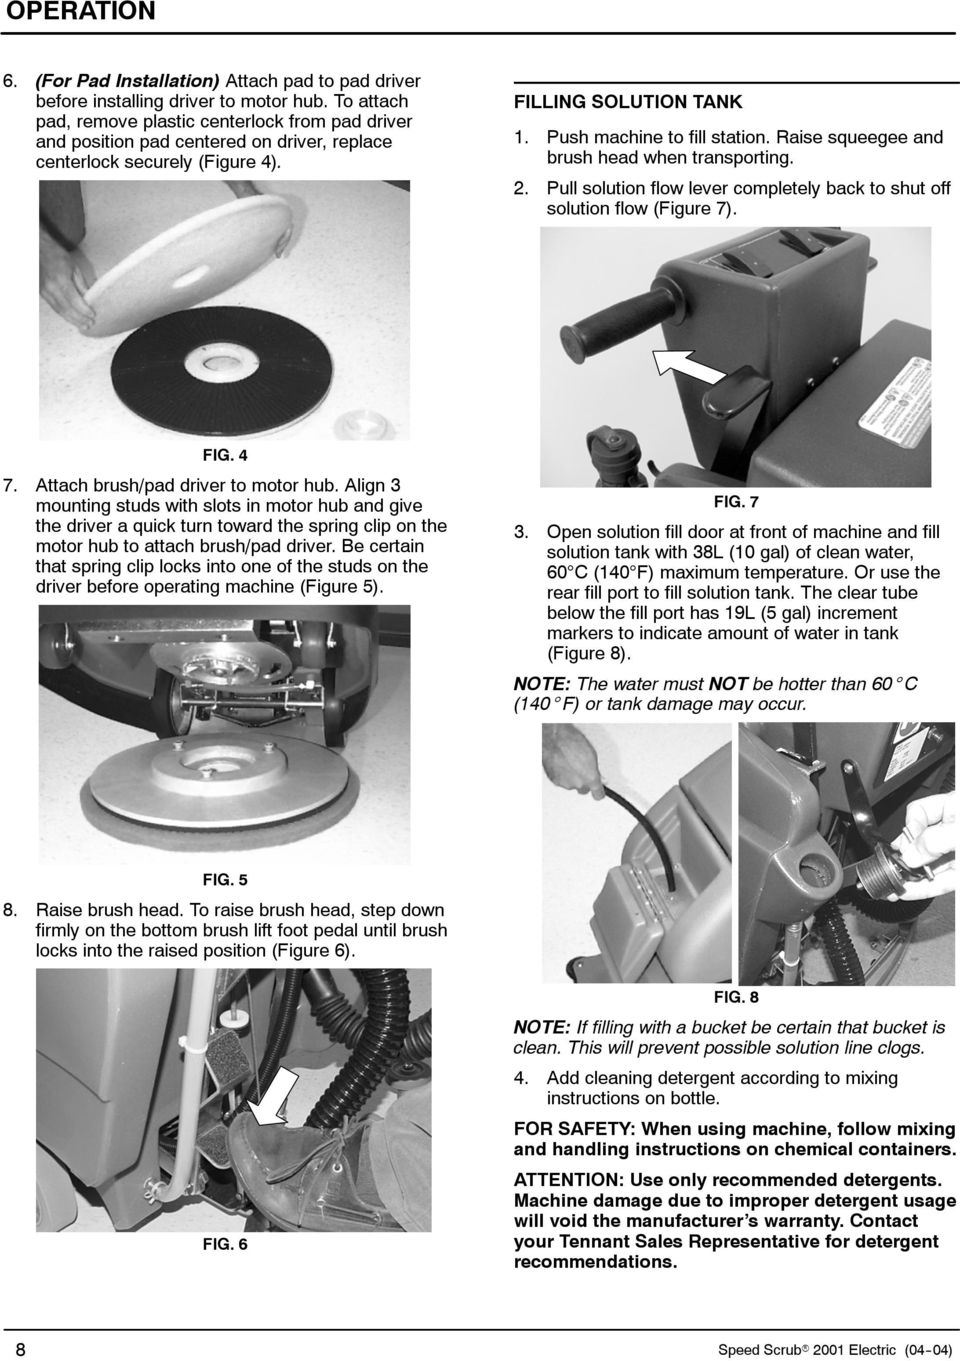 Raise squeegee and brush head when transporting. 2. Pull solution flow lever completely back to shut off solution flow (Figure 7). FIG. 4 7. Attach brush/pad driver to motor hub.